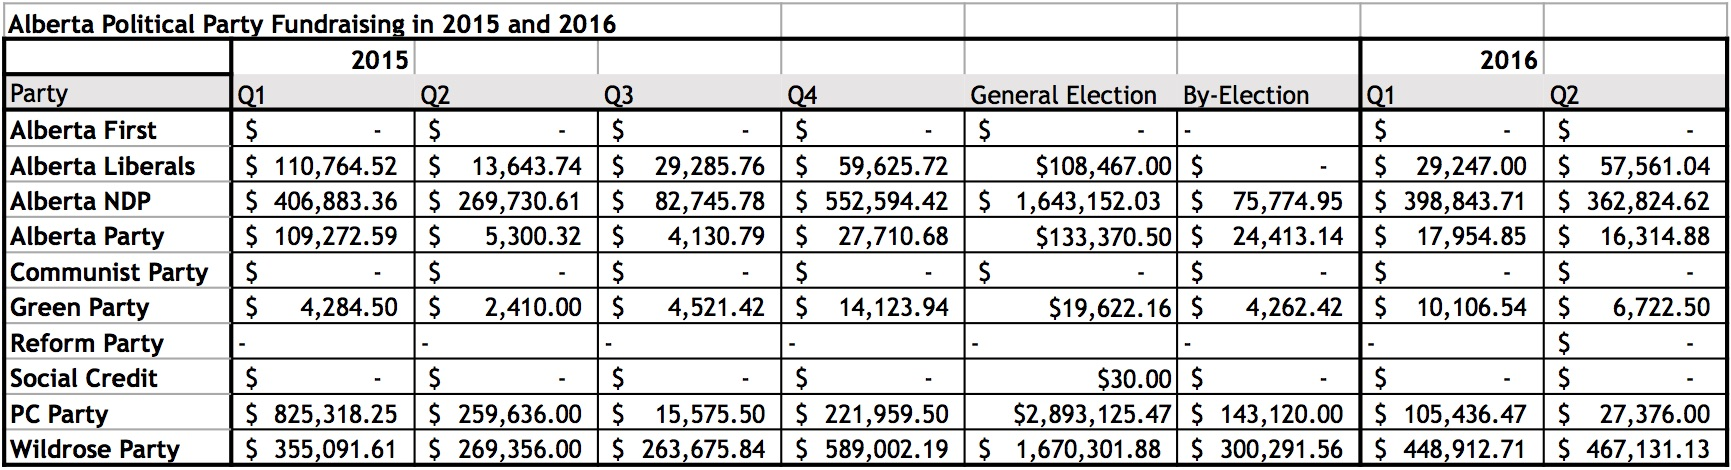 Alberta Political Party fundraising in 2015 and the first two quarters of 2016.